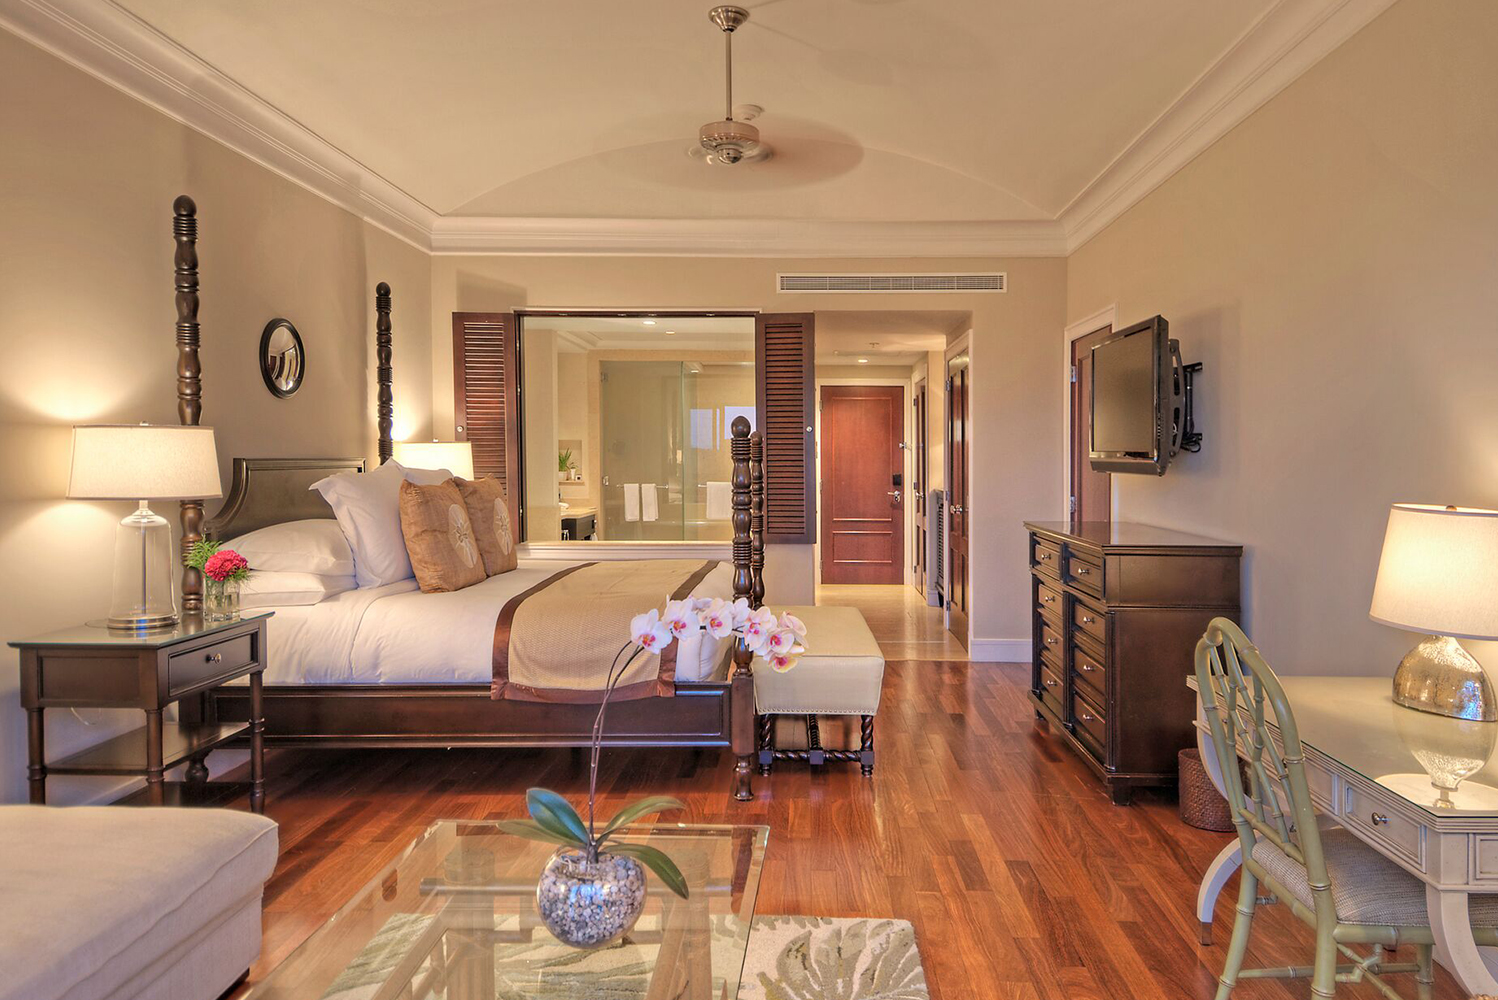 The property made enhancements to the 118 guestrooms, suites and villas.